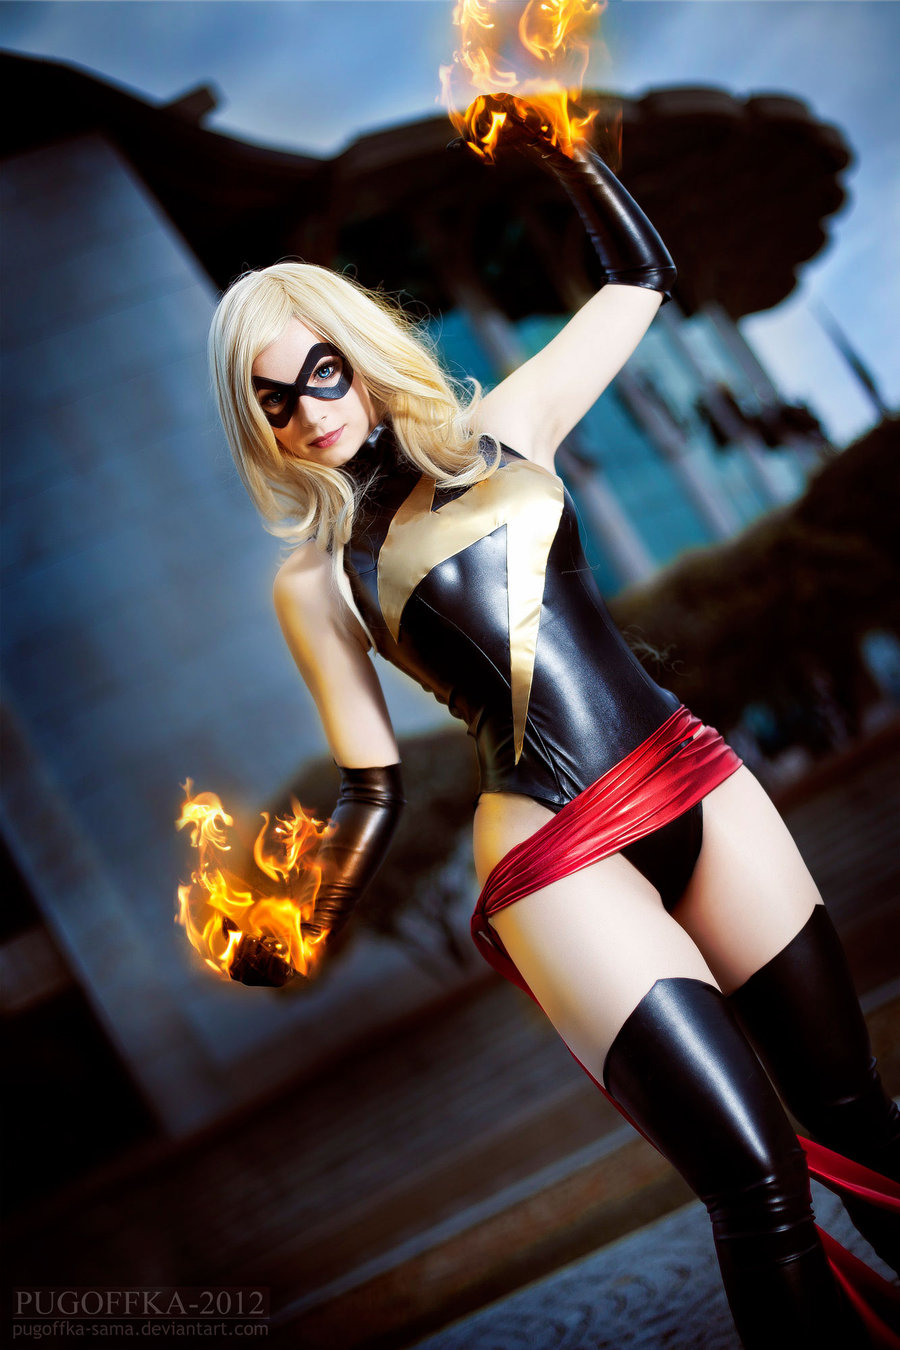 Enjinight  is Ms. Marvel